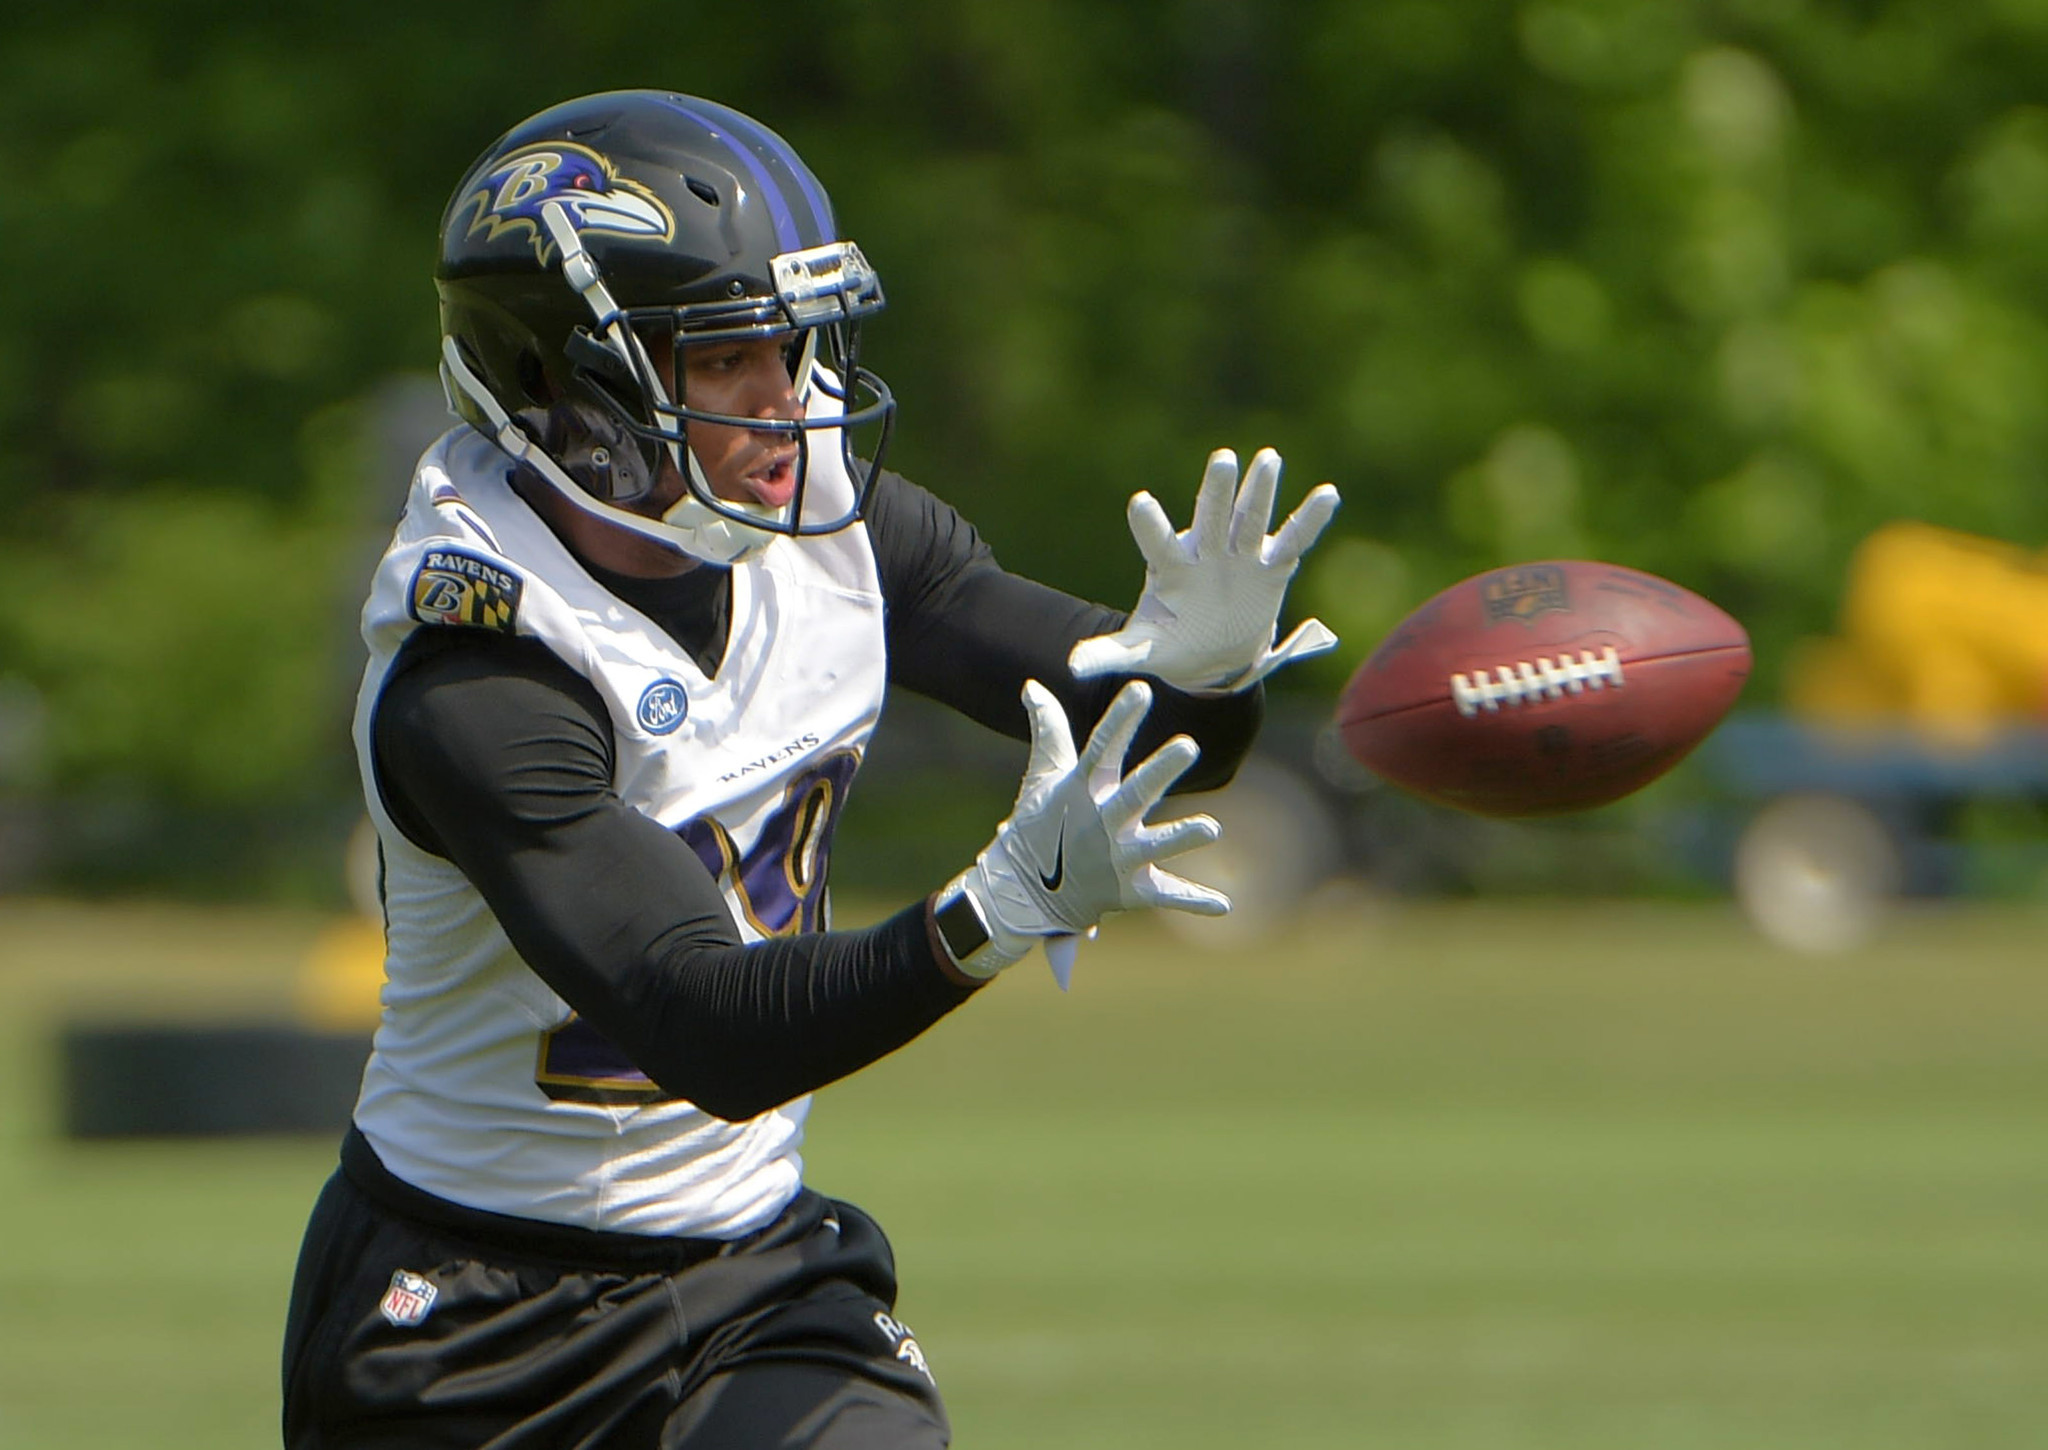 Bal-rookie-cornerback-marlon-humphrey-unlikely-to-be-used-in-slot-20170619